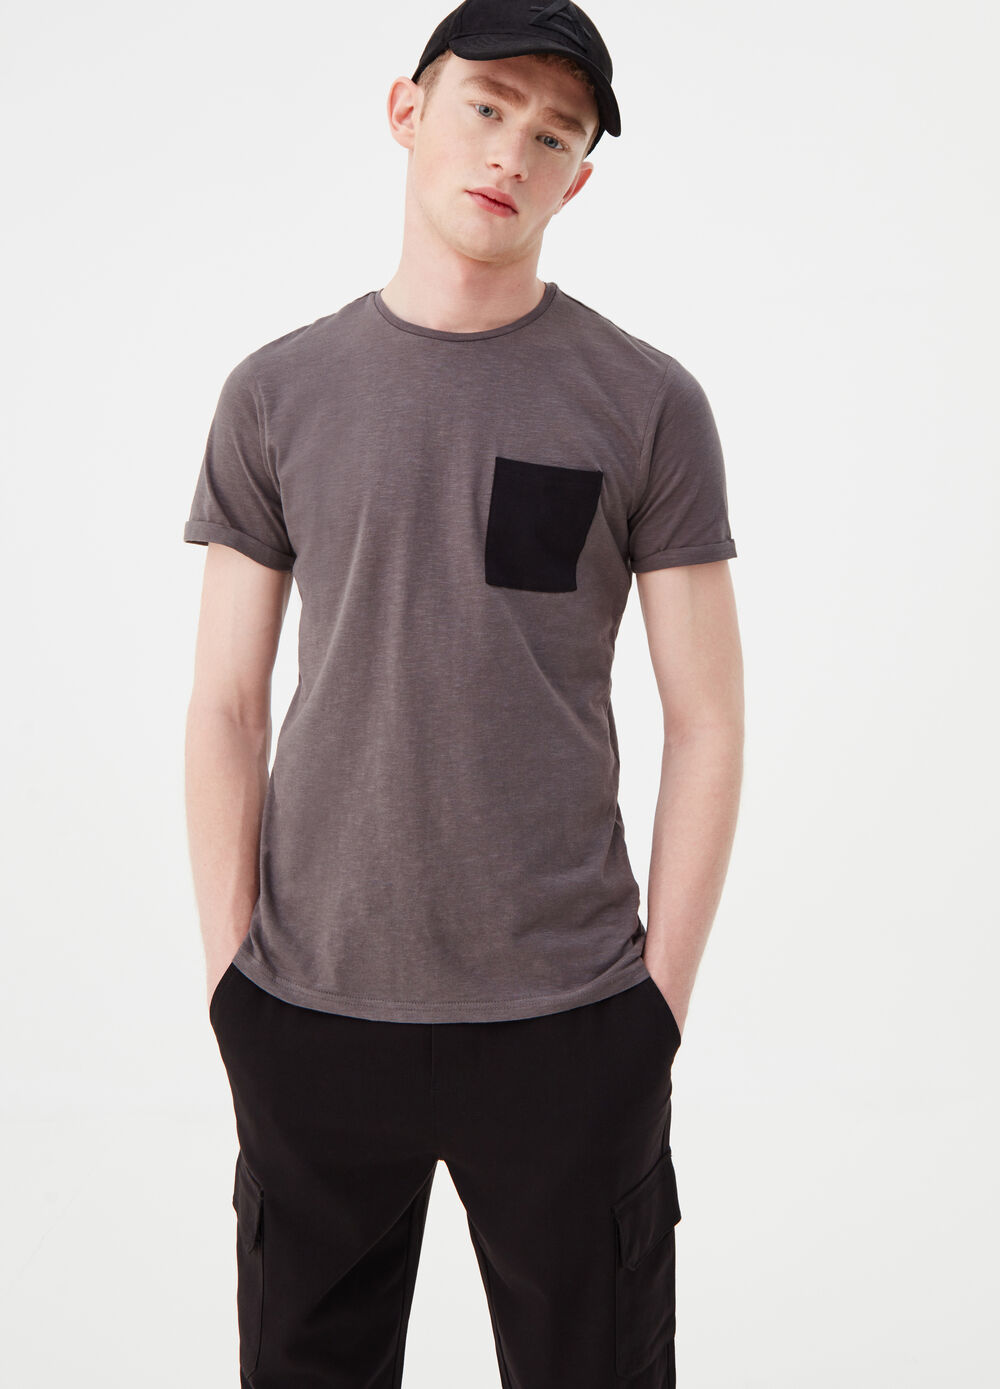 T-shirt with contrasting pocket